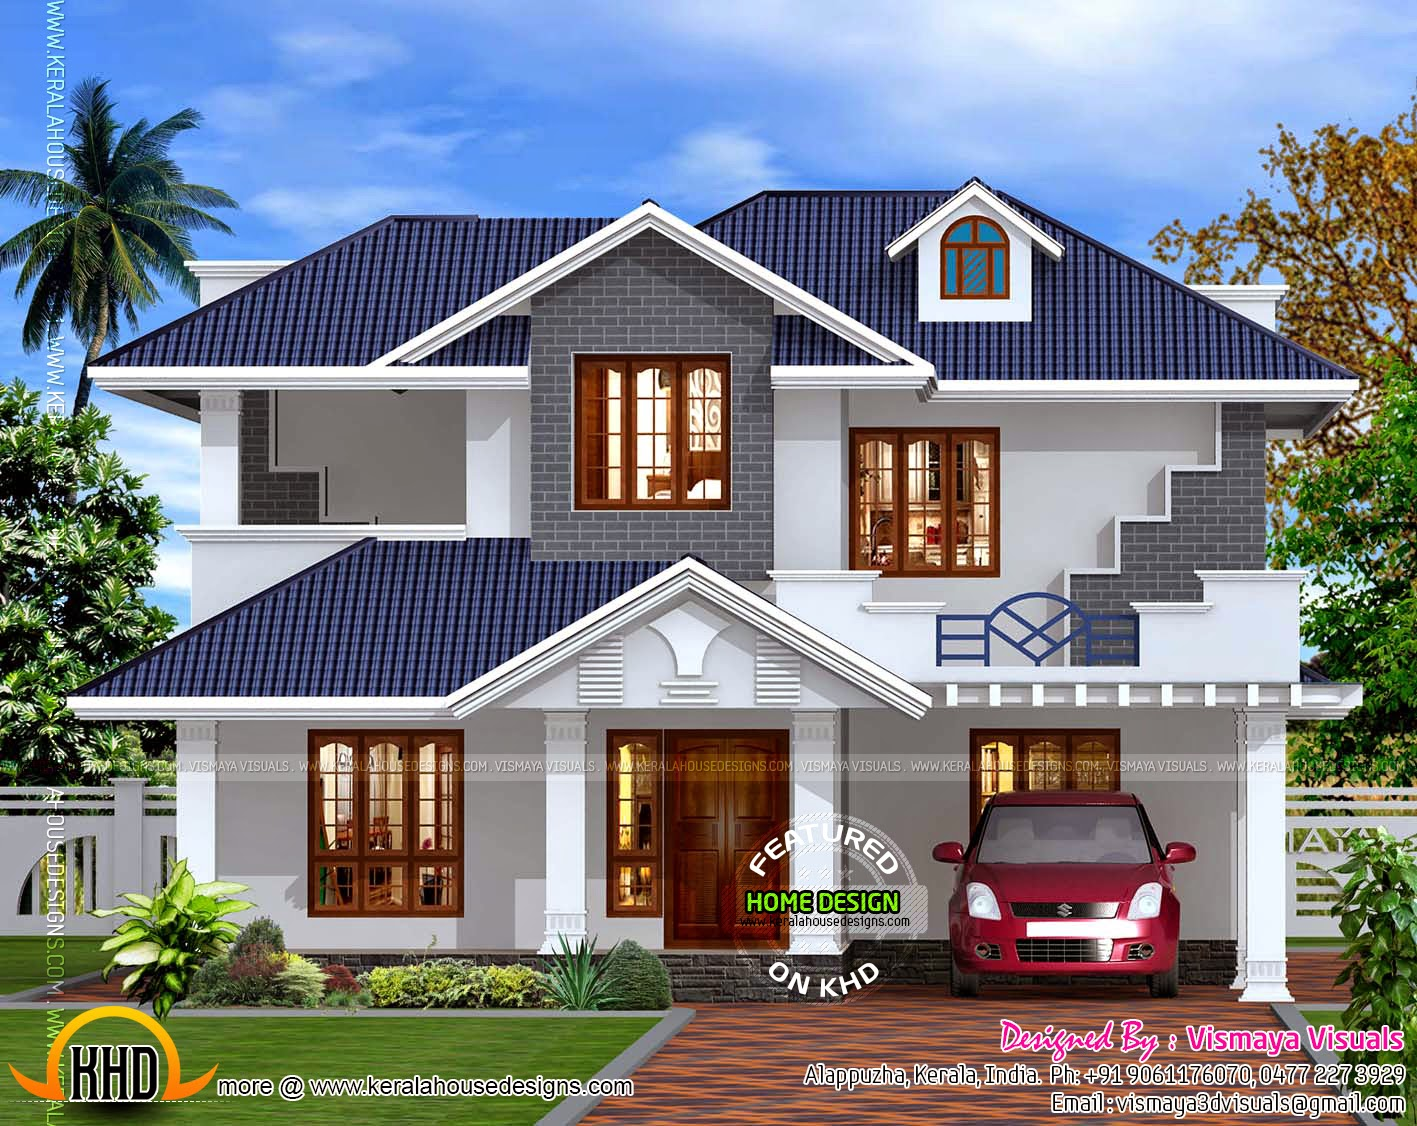 Kerala style villa exterior kerala home design and floor for Kerala house designs and plans